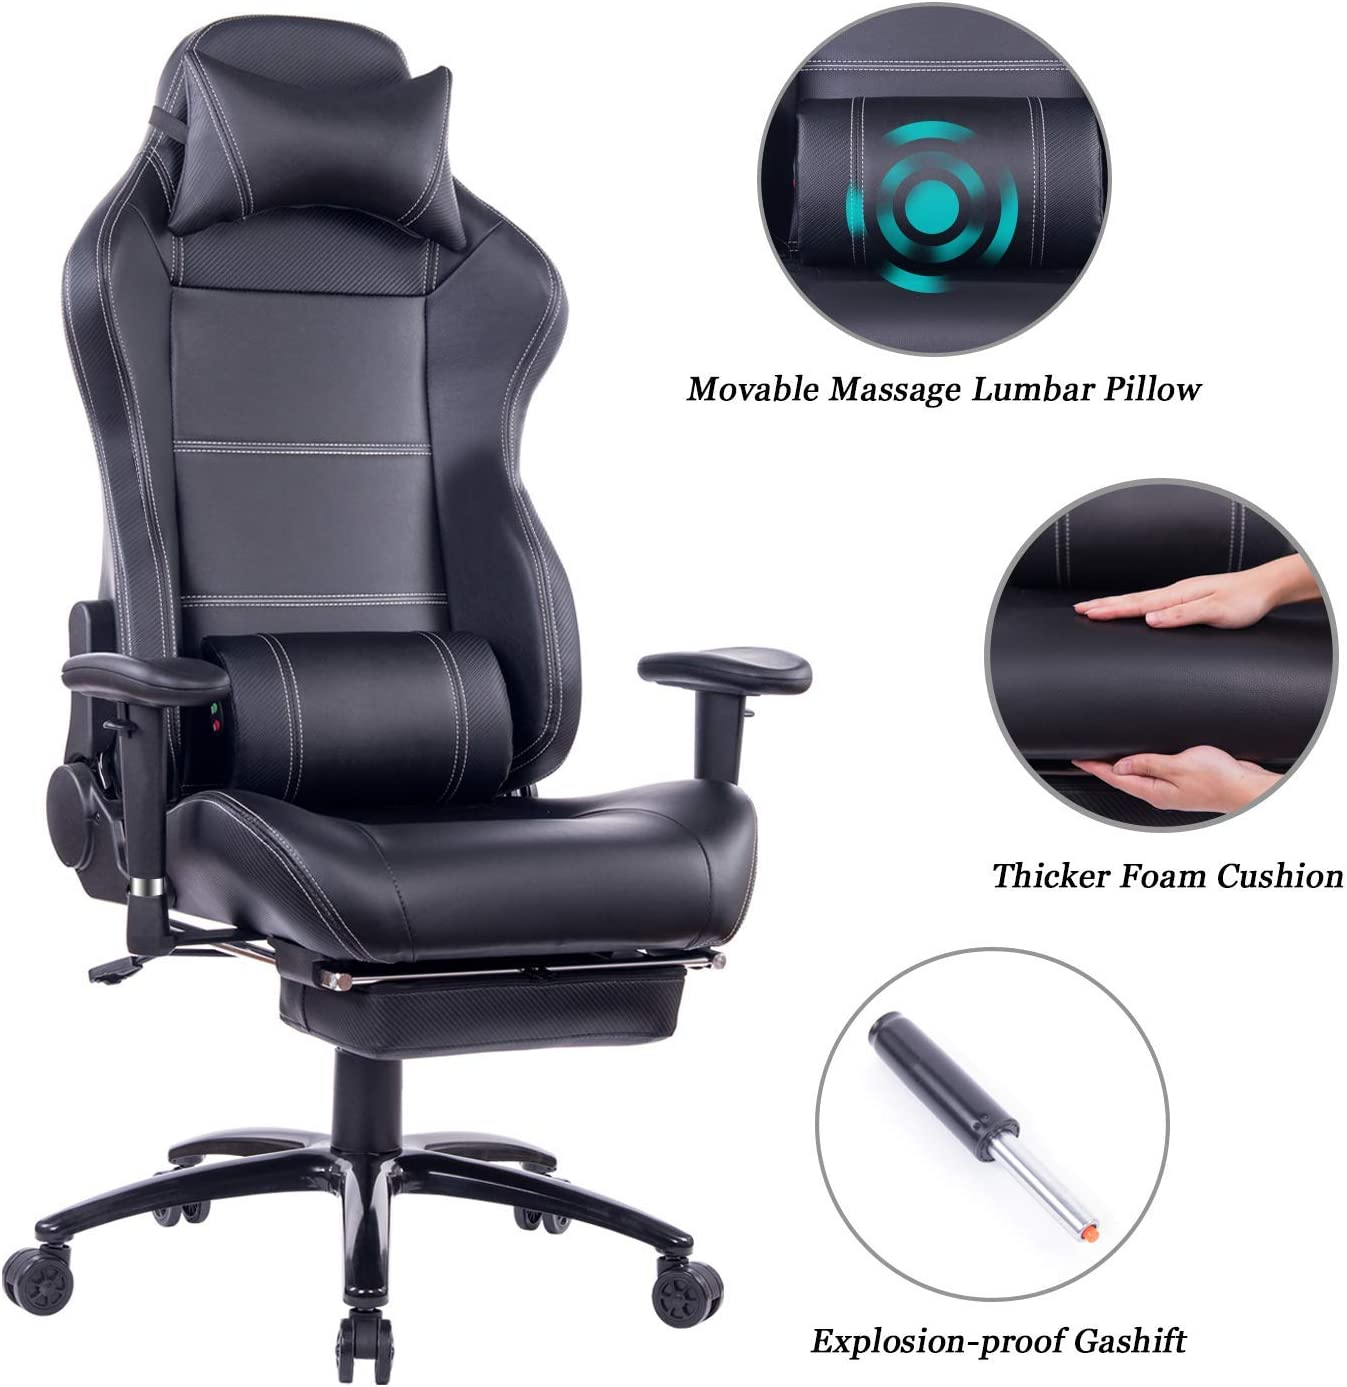 HEALGEN Reclining Gaming Chair with Adjustable Massage Lumbar Pillow and Footrest- Memory Foam PC Computer Racing Chair - Ergonomic High-Back Desk Office Chair (8263Black)